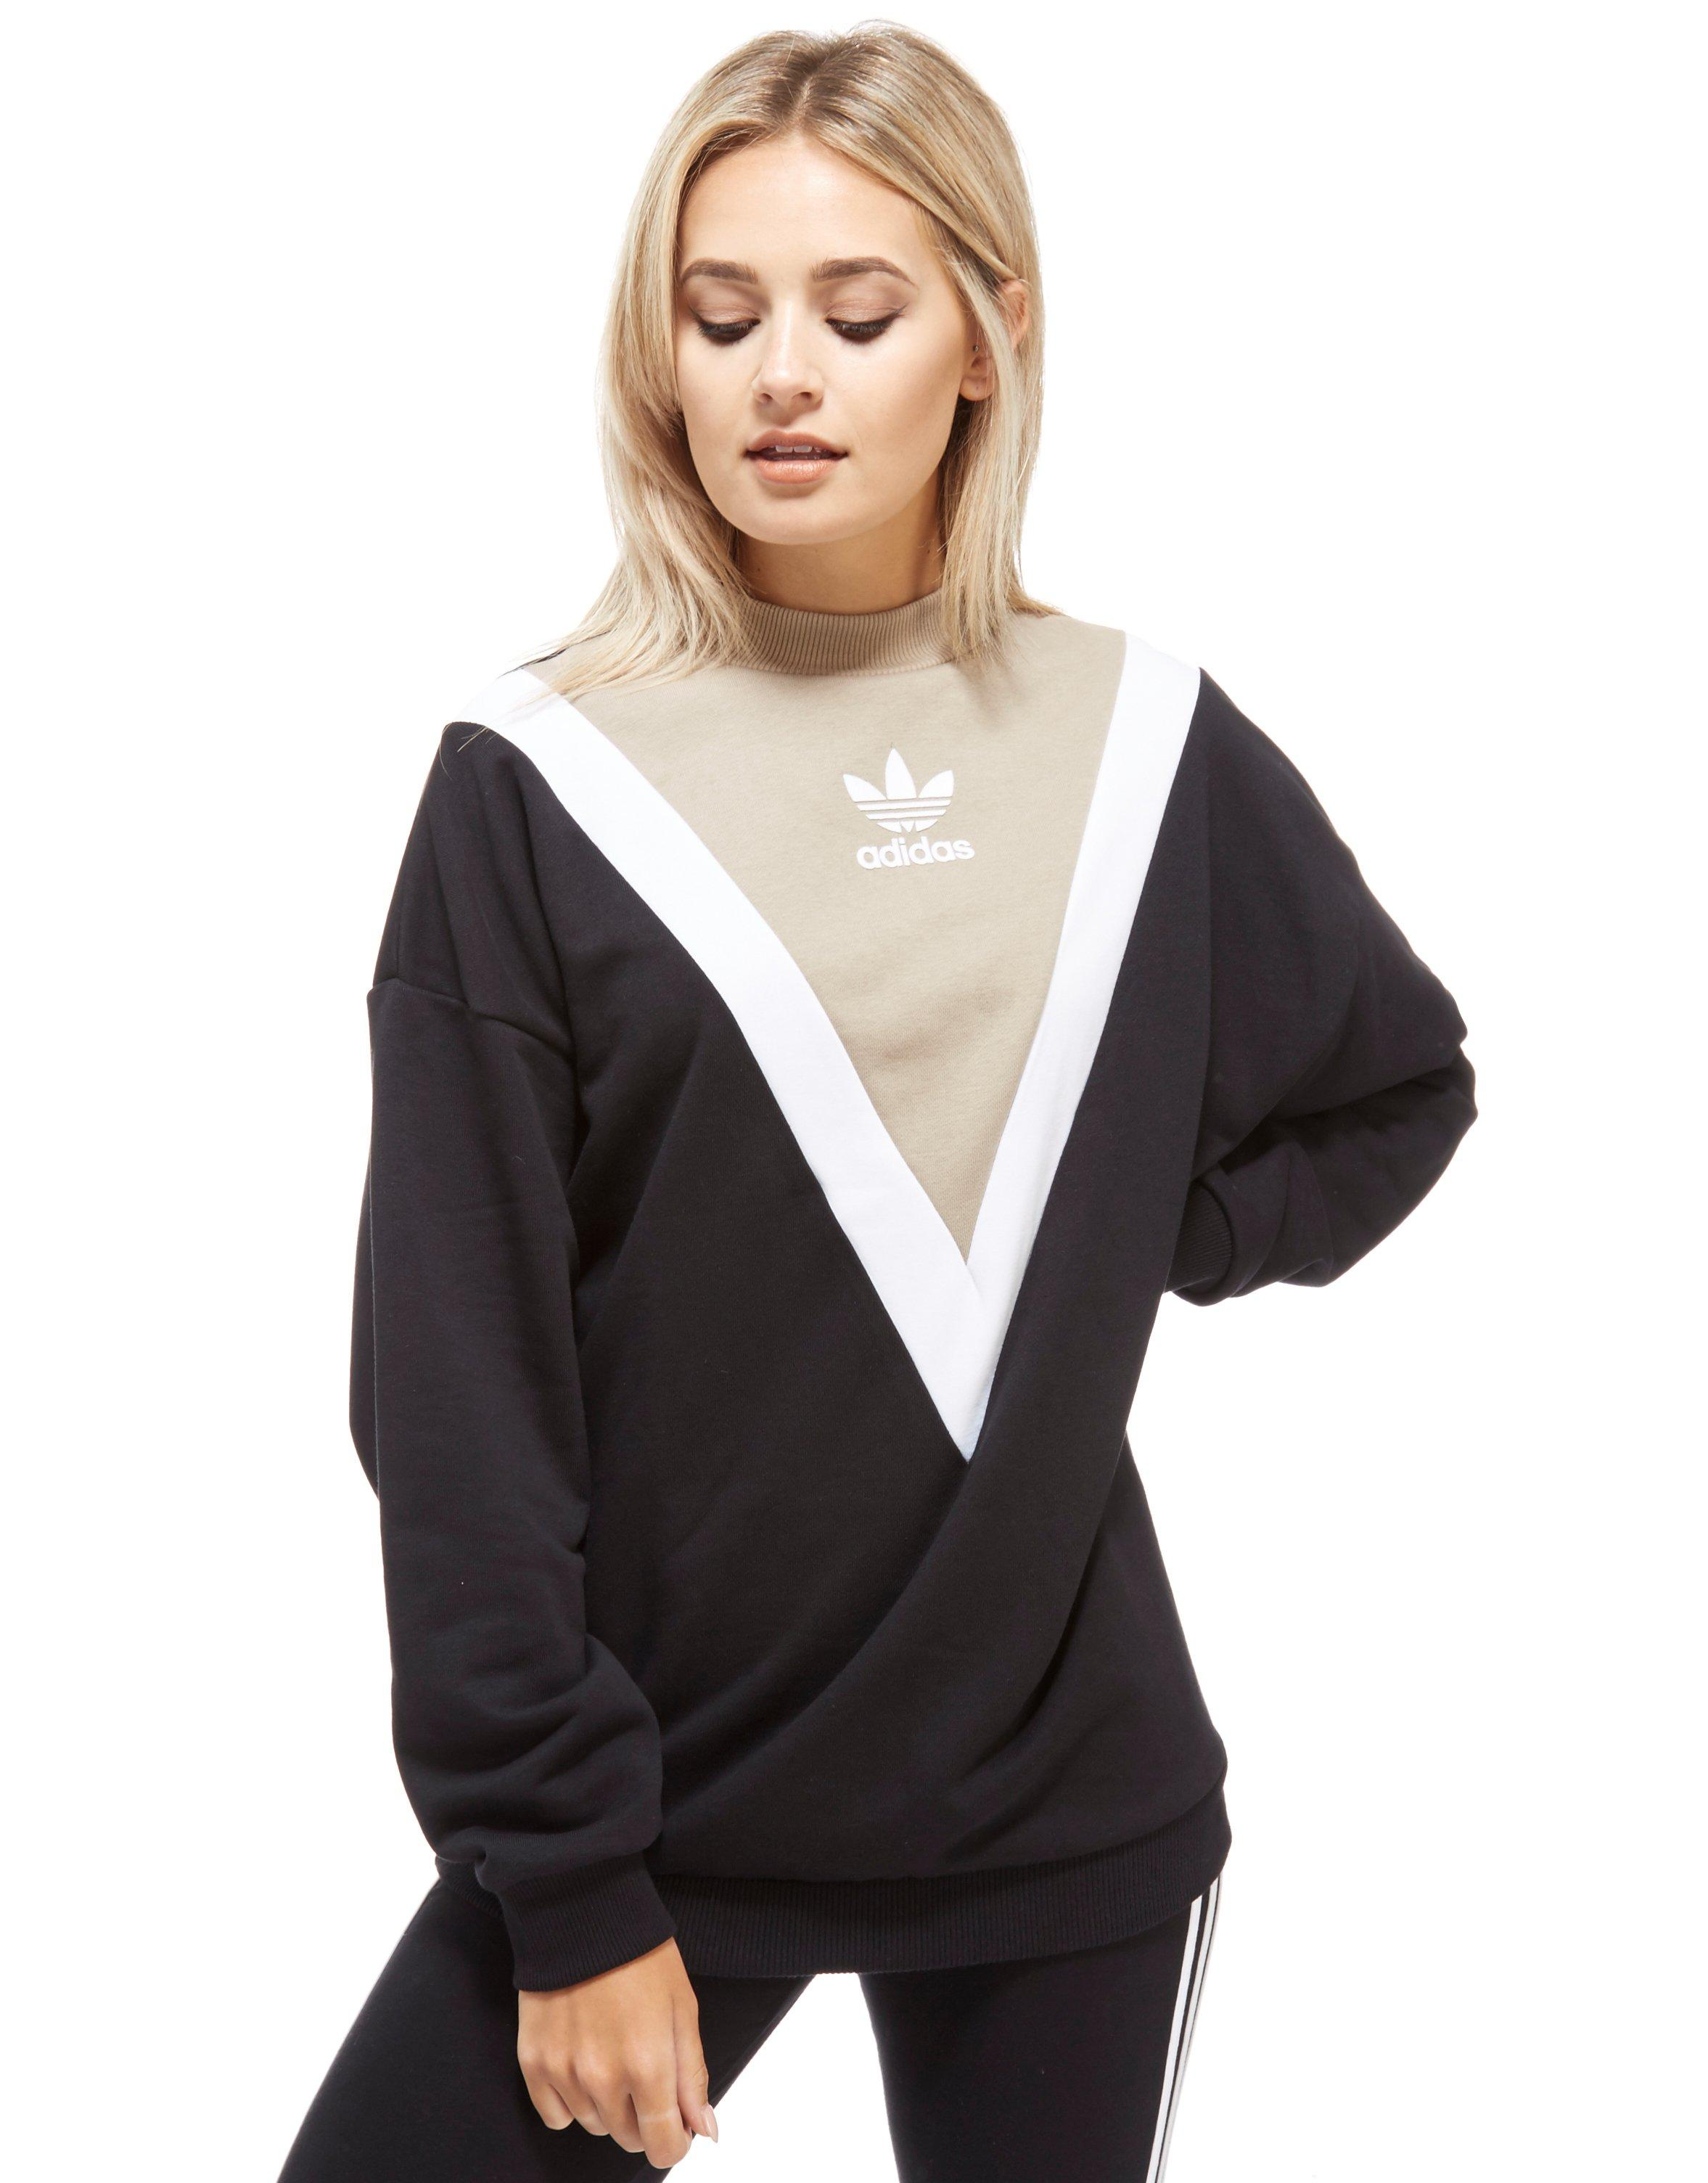 jd_281081_a?qlt=80 womens adidas originals trainers, clothing & accessories at jd sports,Womens Clothing Adidas